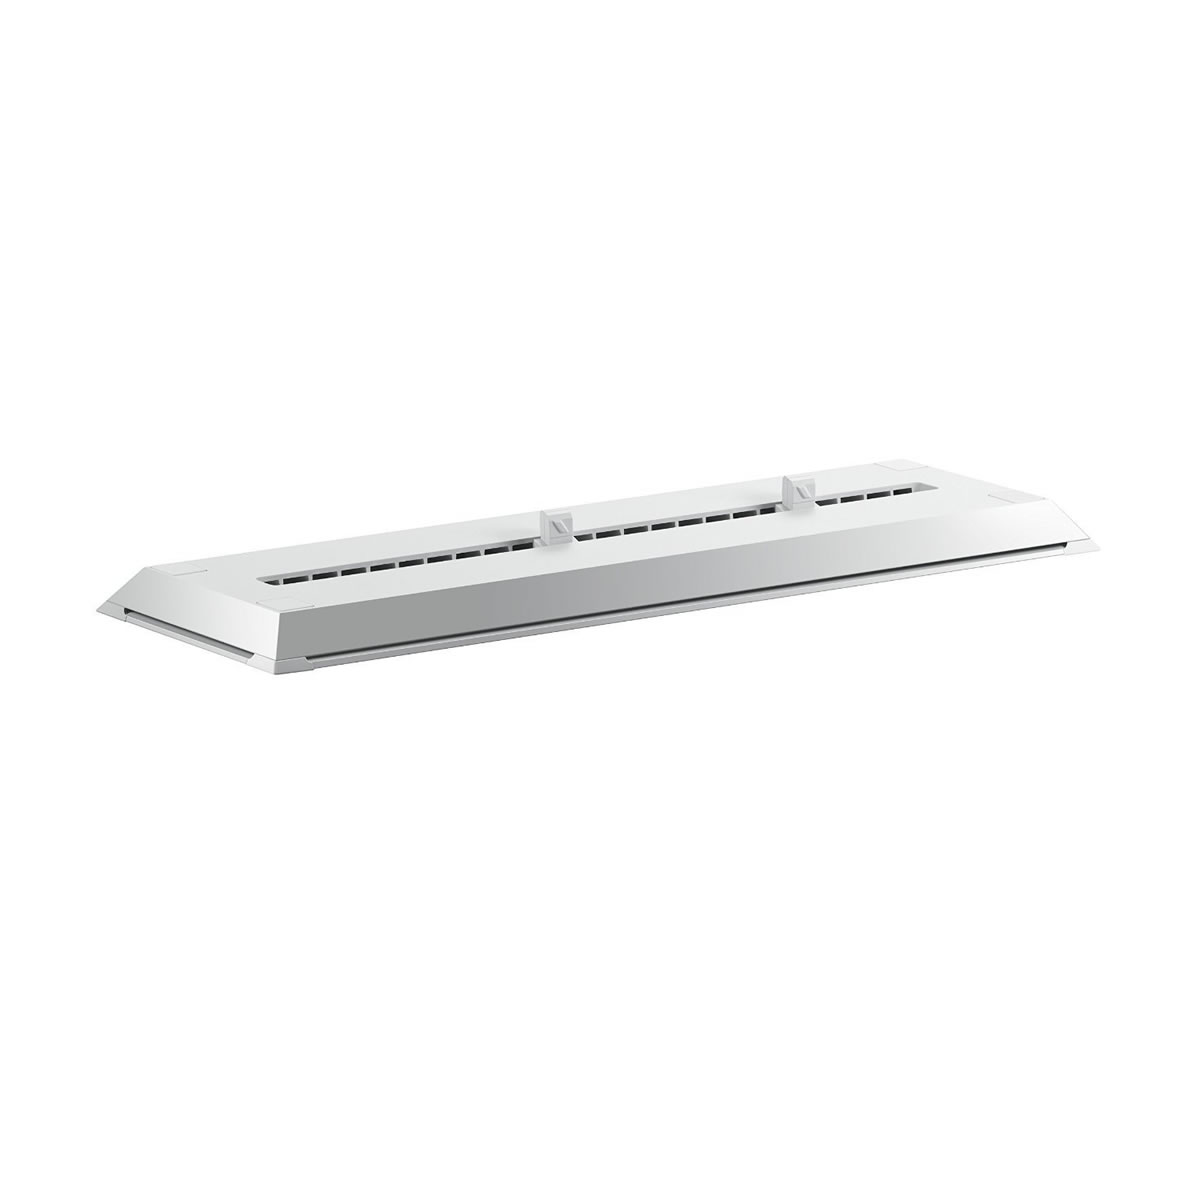 SONY OFFICIAL PLAYSTATION 4 VERTICAL STAND Glacier White - SONY ΕΠΙΣΗΜΗ ΚΑΘΕΤΗ ΒΑΣΗ ΣΤΗΡΙΞΗΣ PLAYSTATION 4 ΛΕΥΚΟ (PS4)